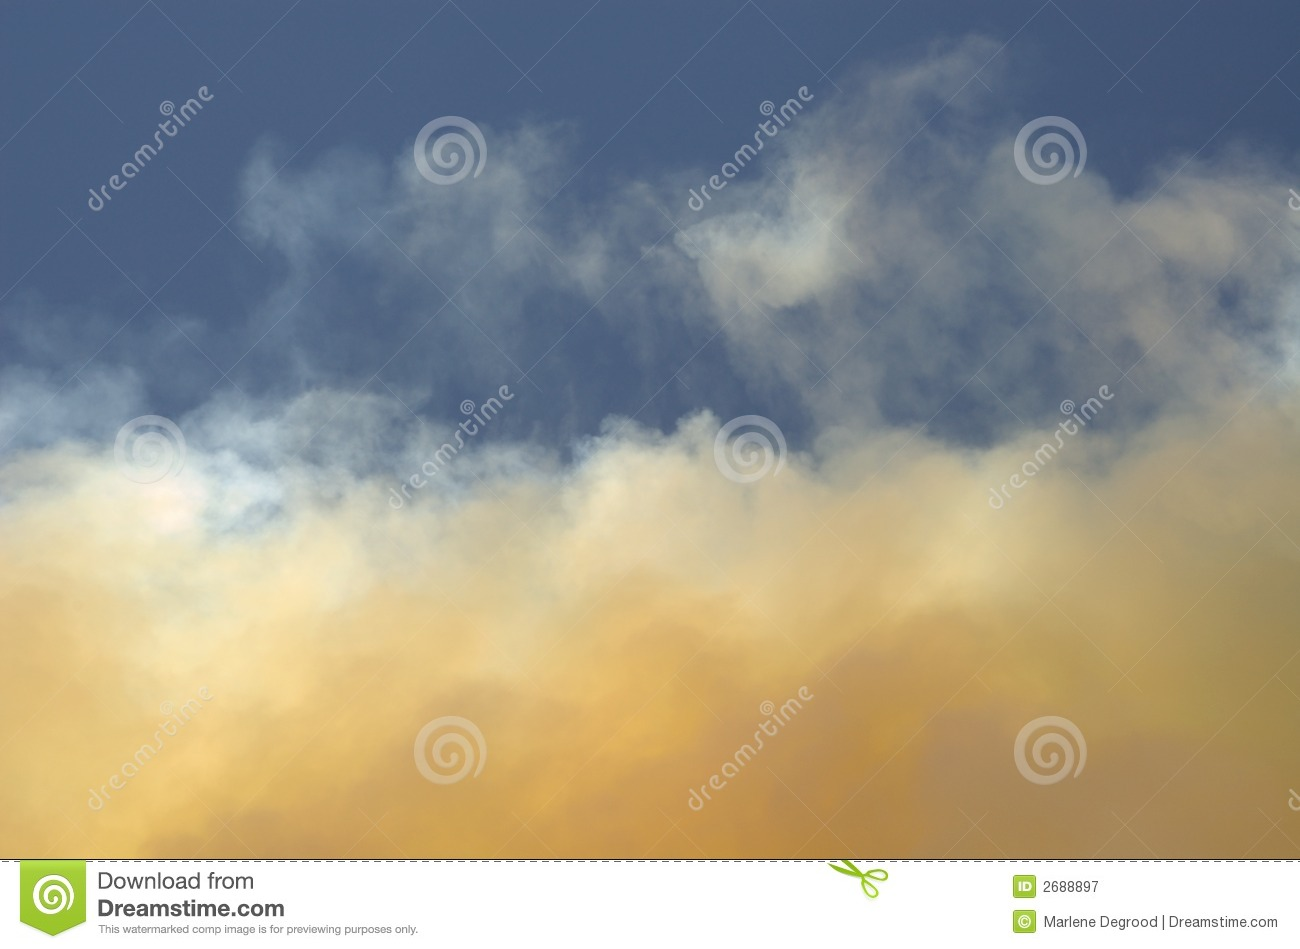 Smoke Cloud Plume 2 Royalty Free Stock Photography   Image  2688897